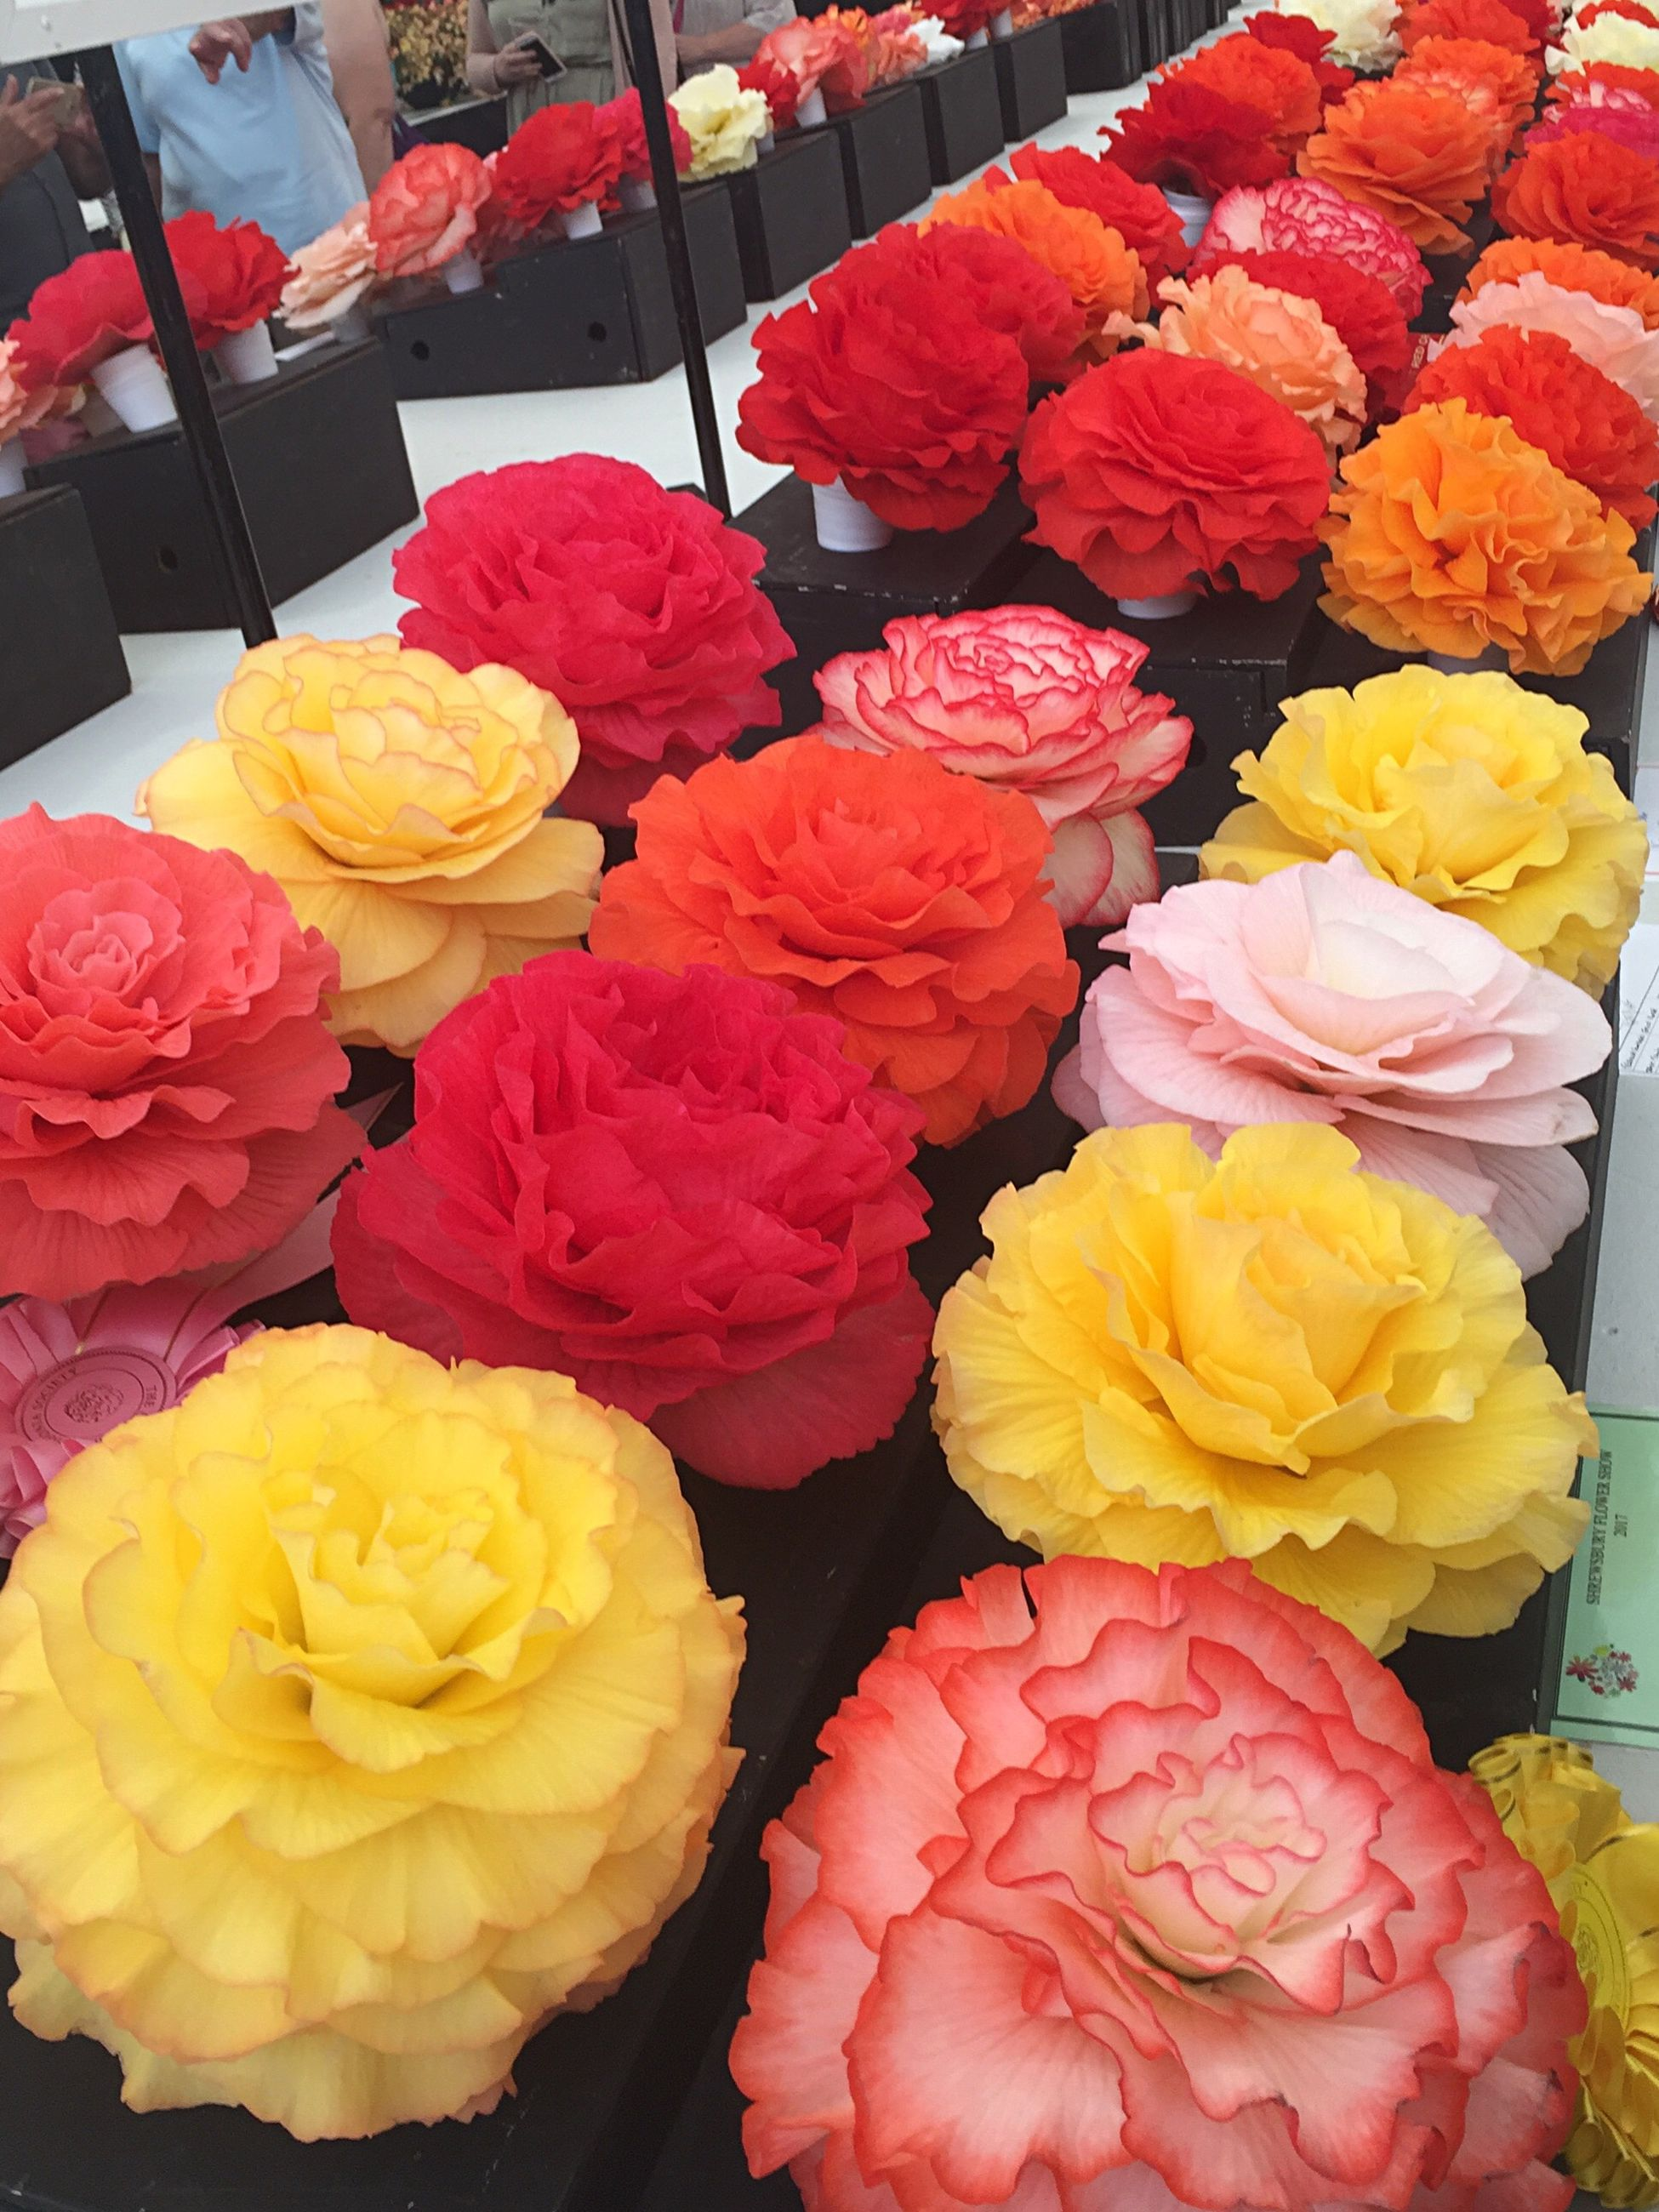 flower, variation, freshness, multi colored, retail, choice, no people, for sale, arrangement, petal, fragility, rose - flower, flower head, flower market, yellow, beauty in nature, close-up, market, flower shop, bouquet, indoors, day, nature